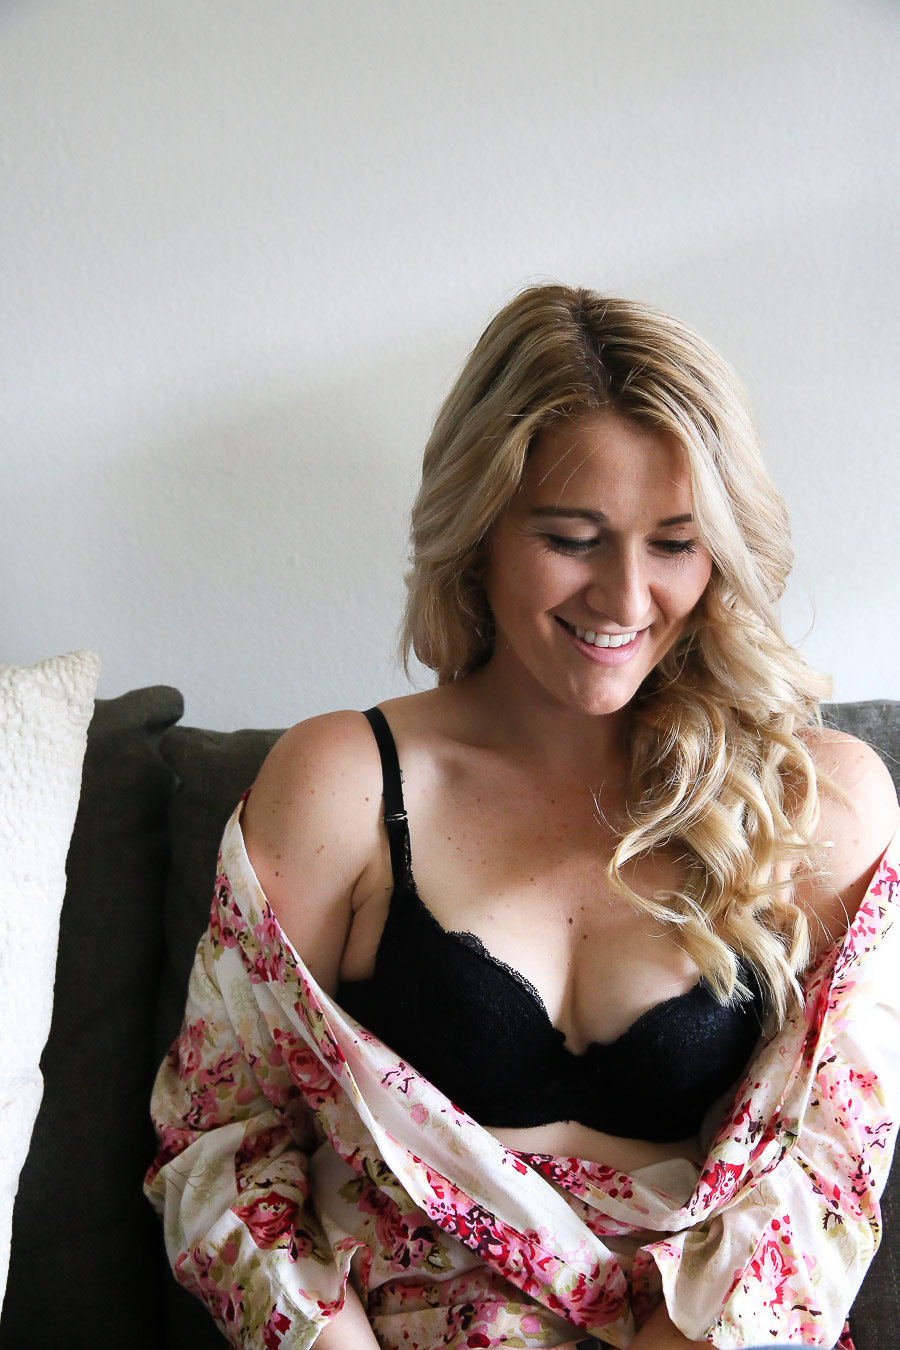 The Little Bra Company Review - Best Bras for Small Busts